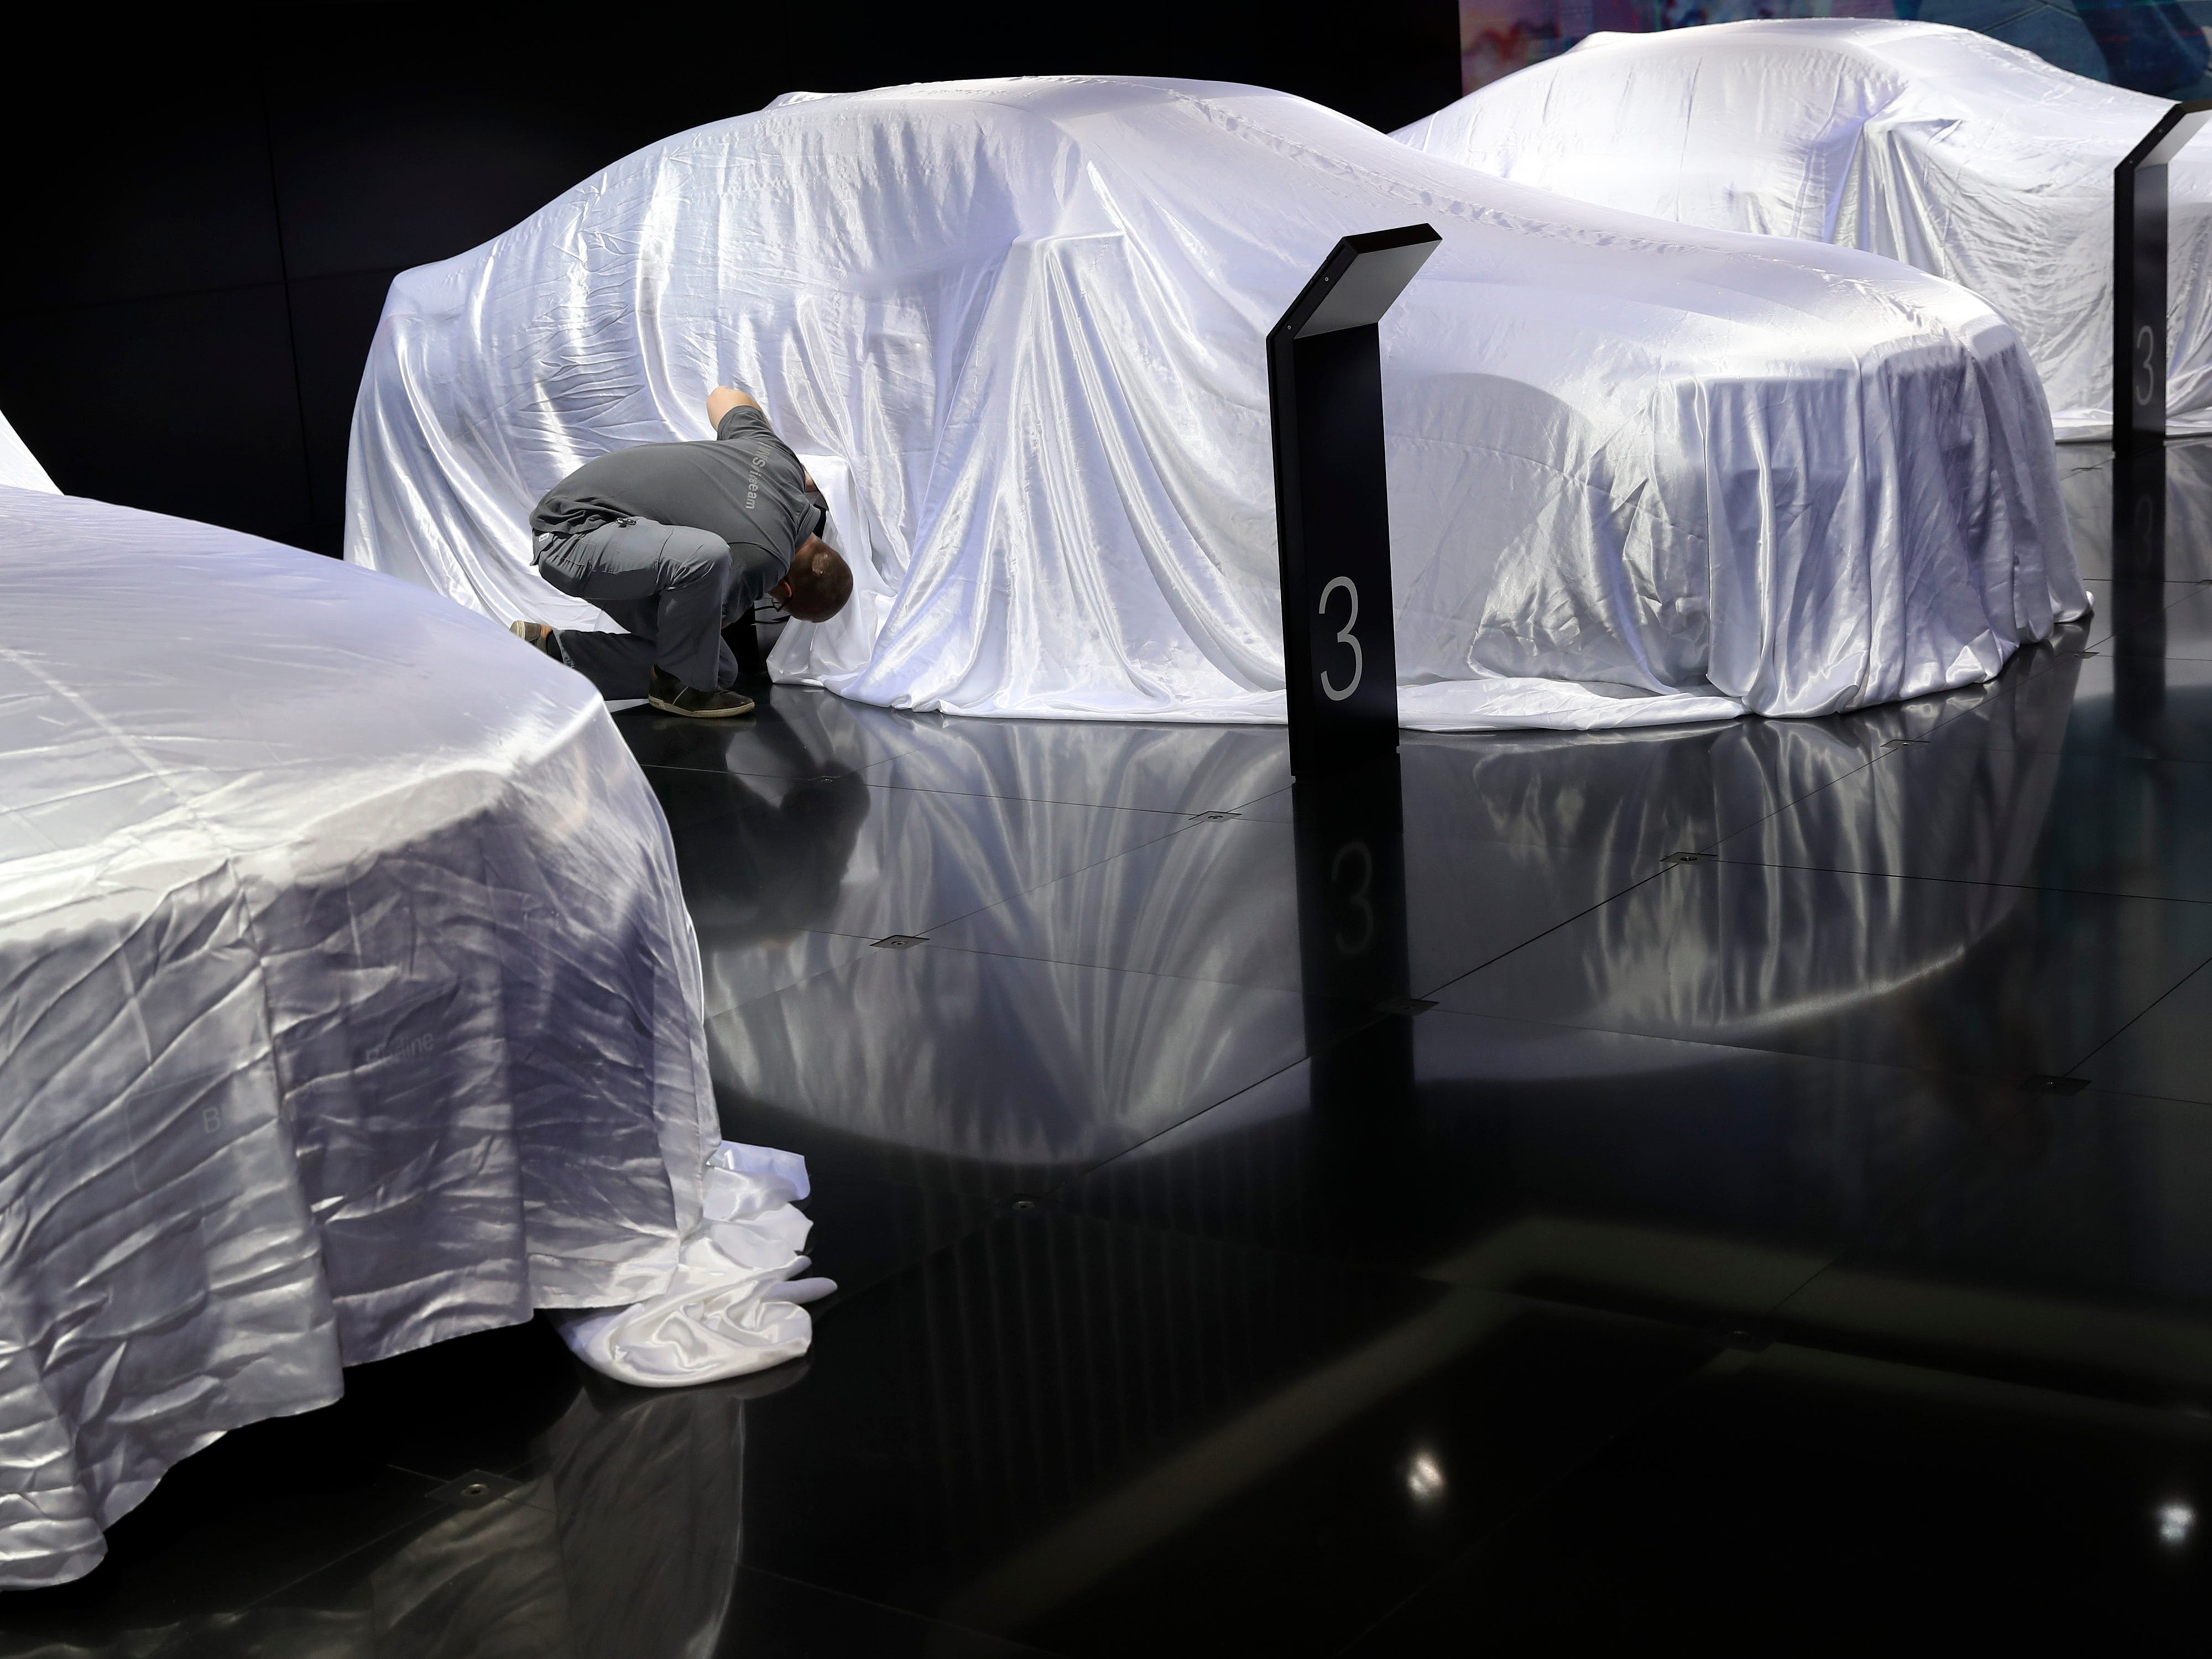 An employee looks under a new BMW 3 before its unveiling.